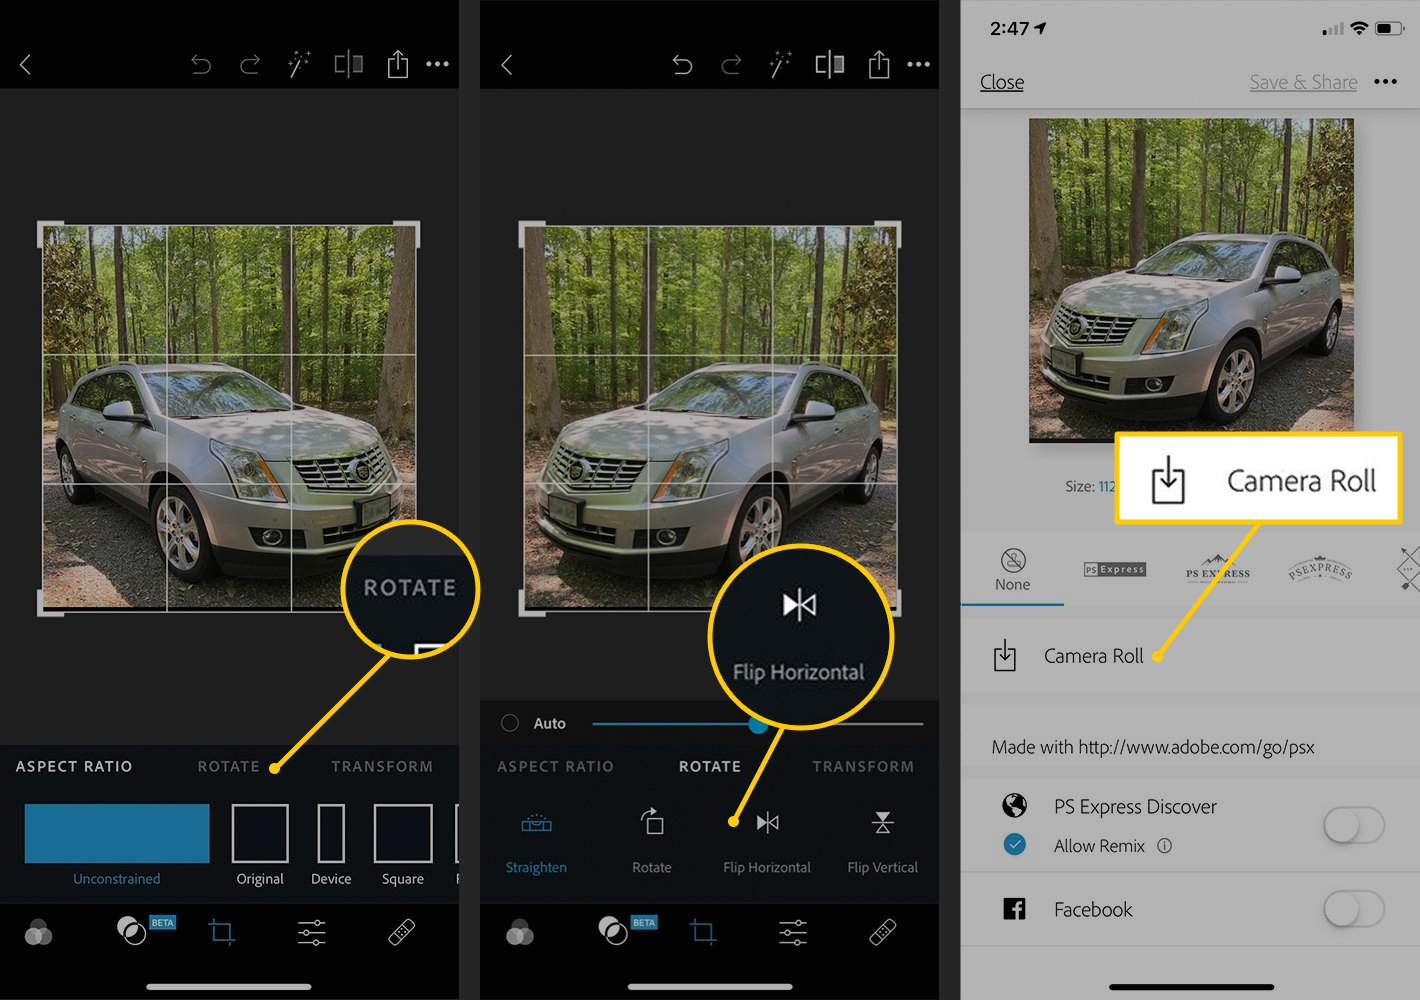 How to Mirror or Flip an Image on iPhone